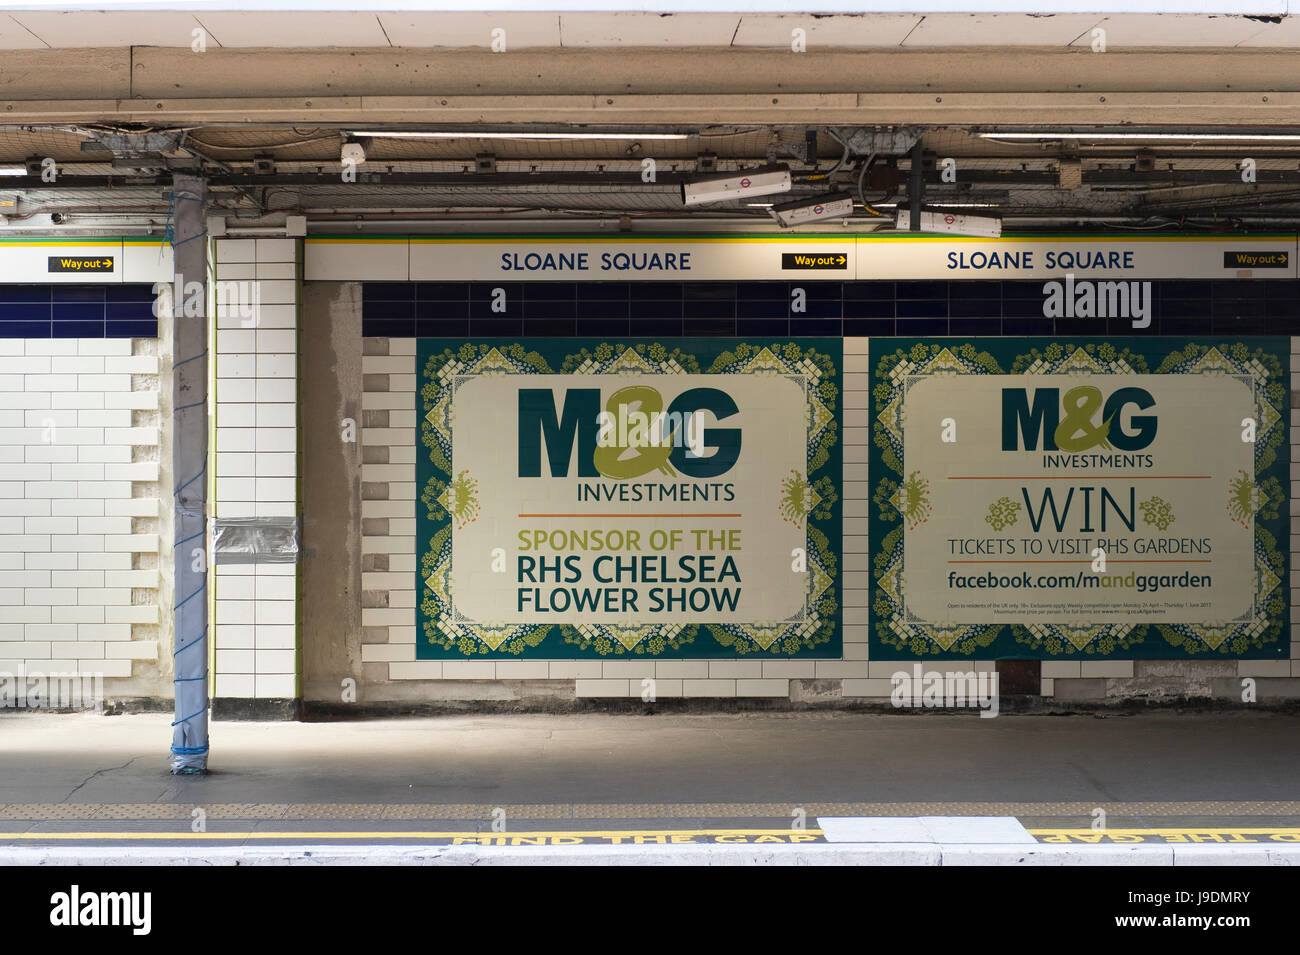 M&G Investments posters at Sloane Square underground station in 2017, M&G are lead sponsors of the RHS Chelsea - Stock Image